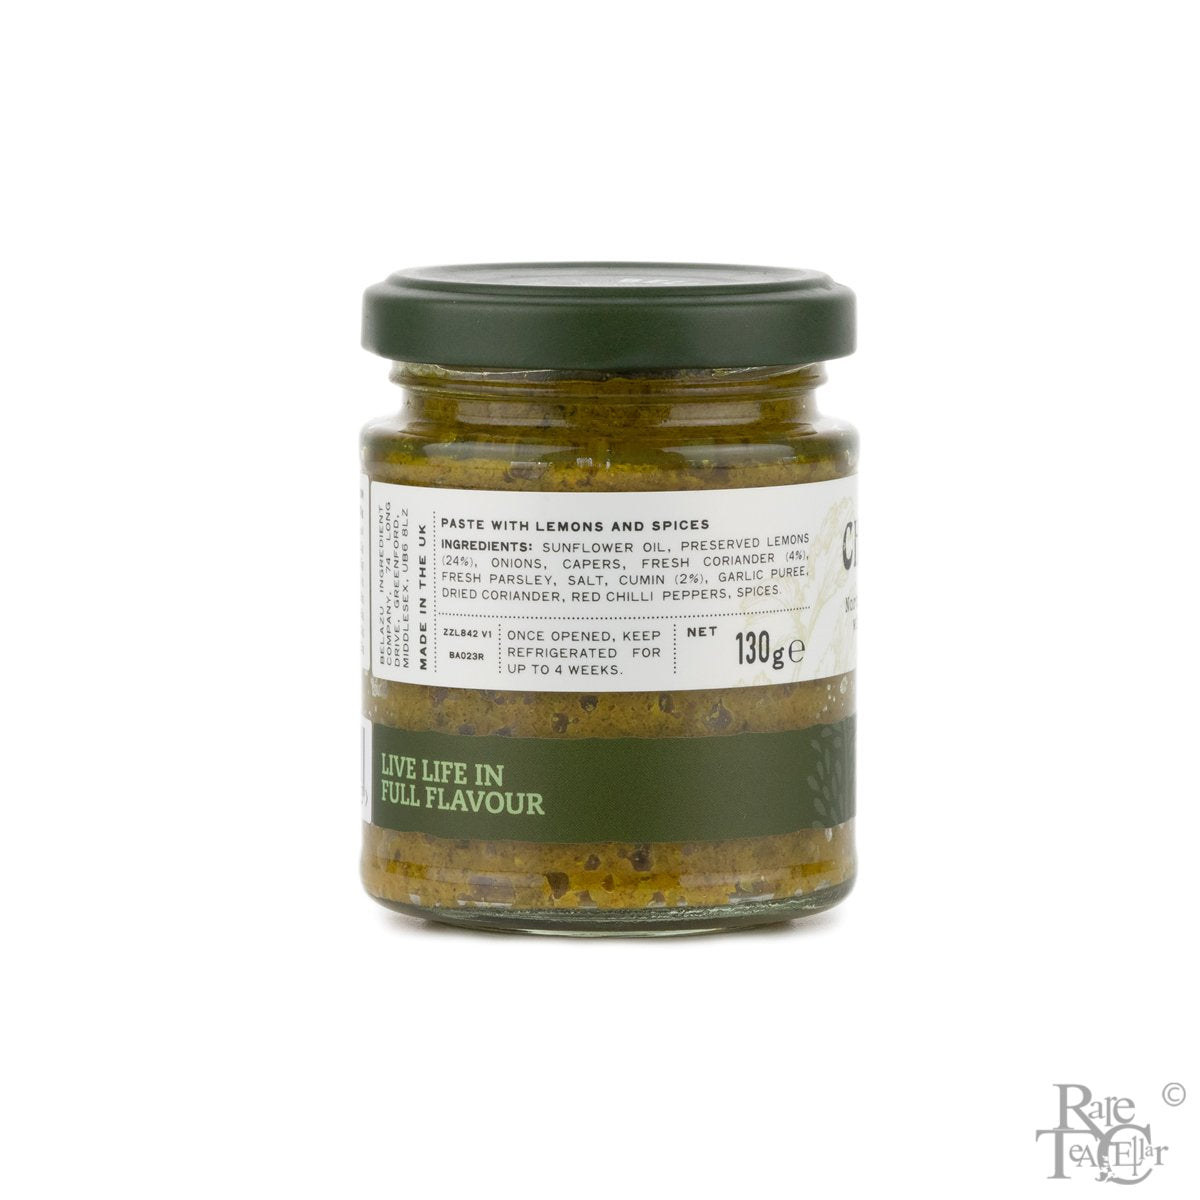 Rare Pantry: Belazu Chermoula Paste